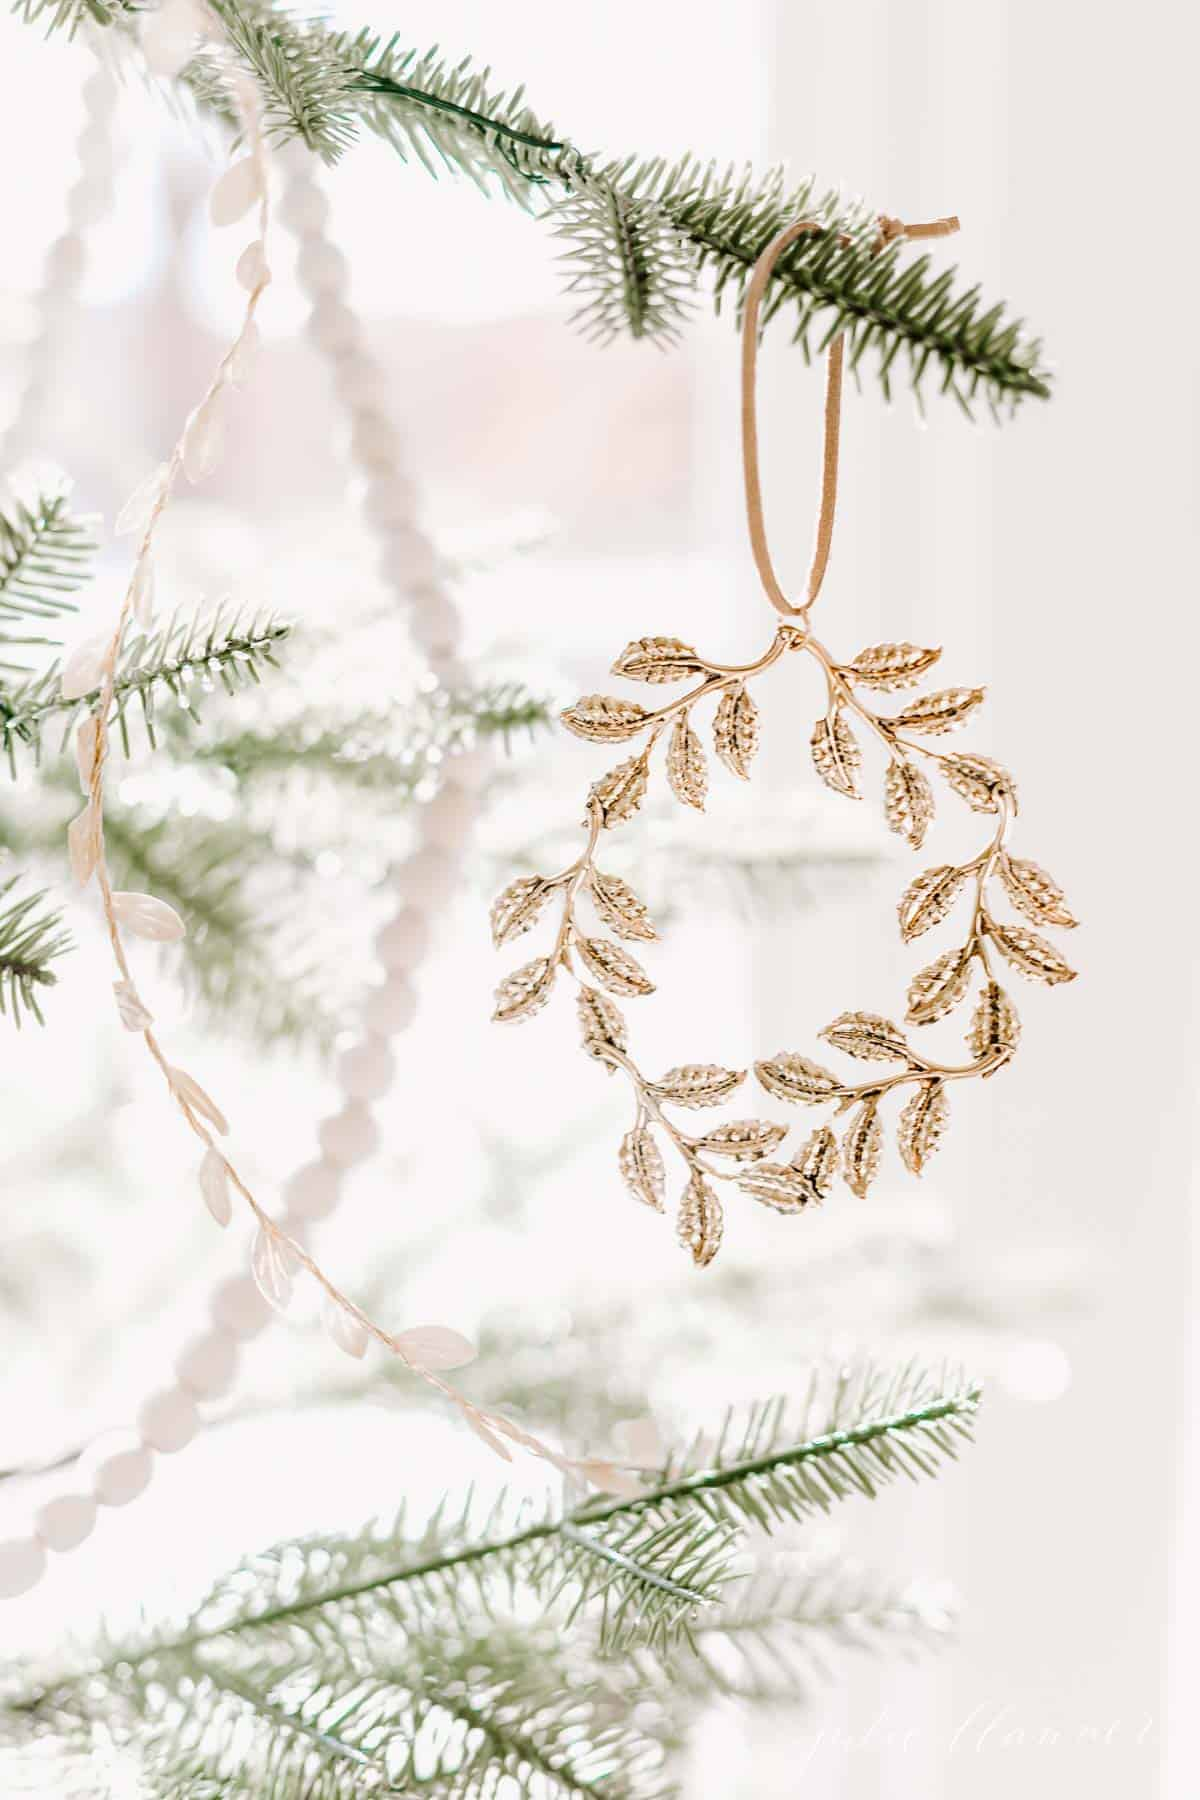 A close up of a gold wreath ornament on a Scandinavian Christmas tree.